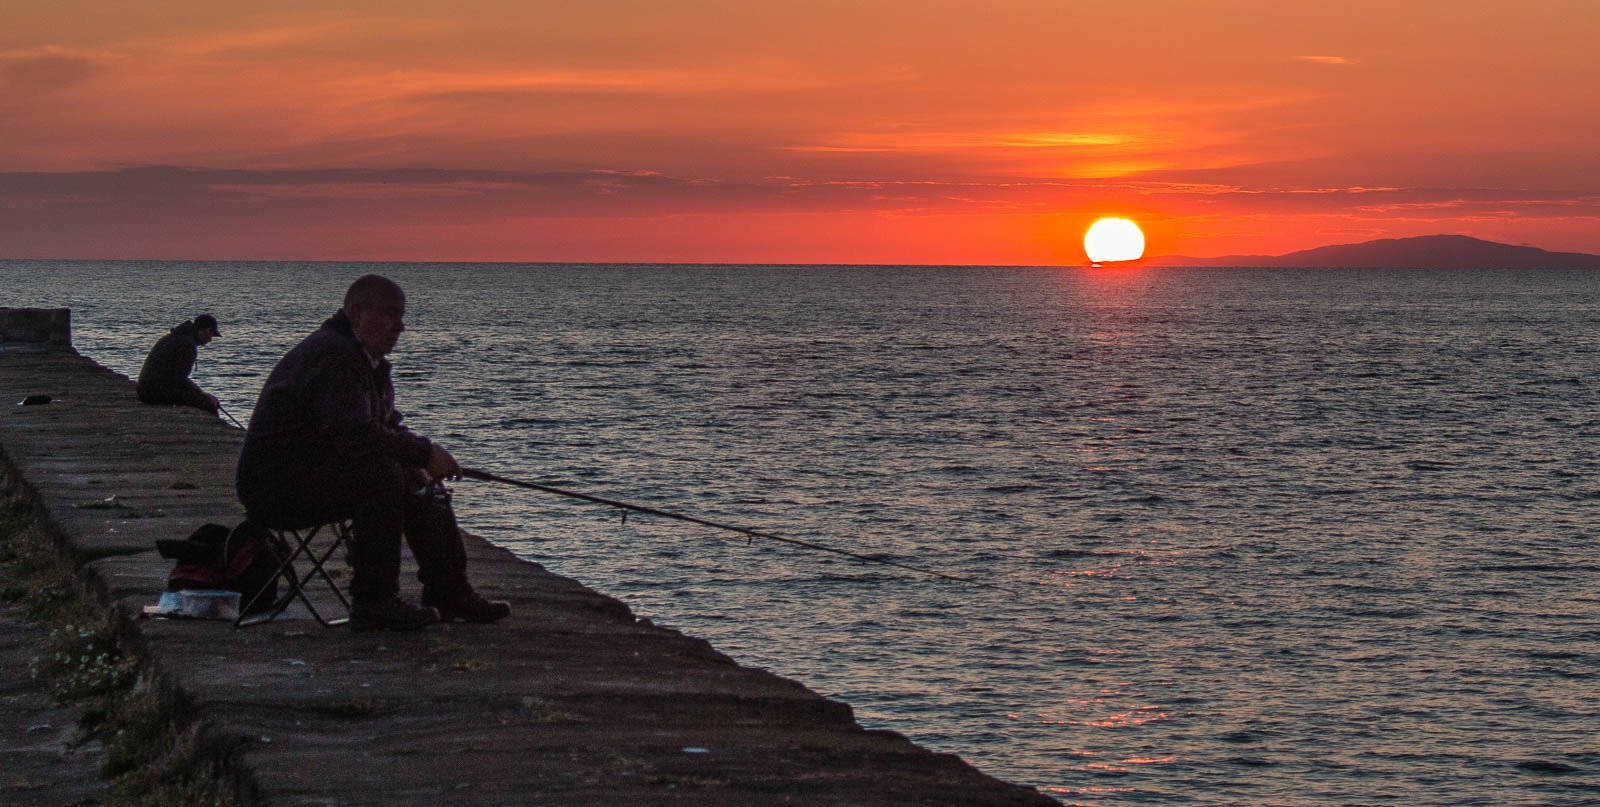 Suset Fishermen by Chris Wood